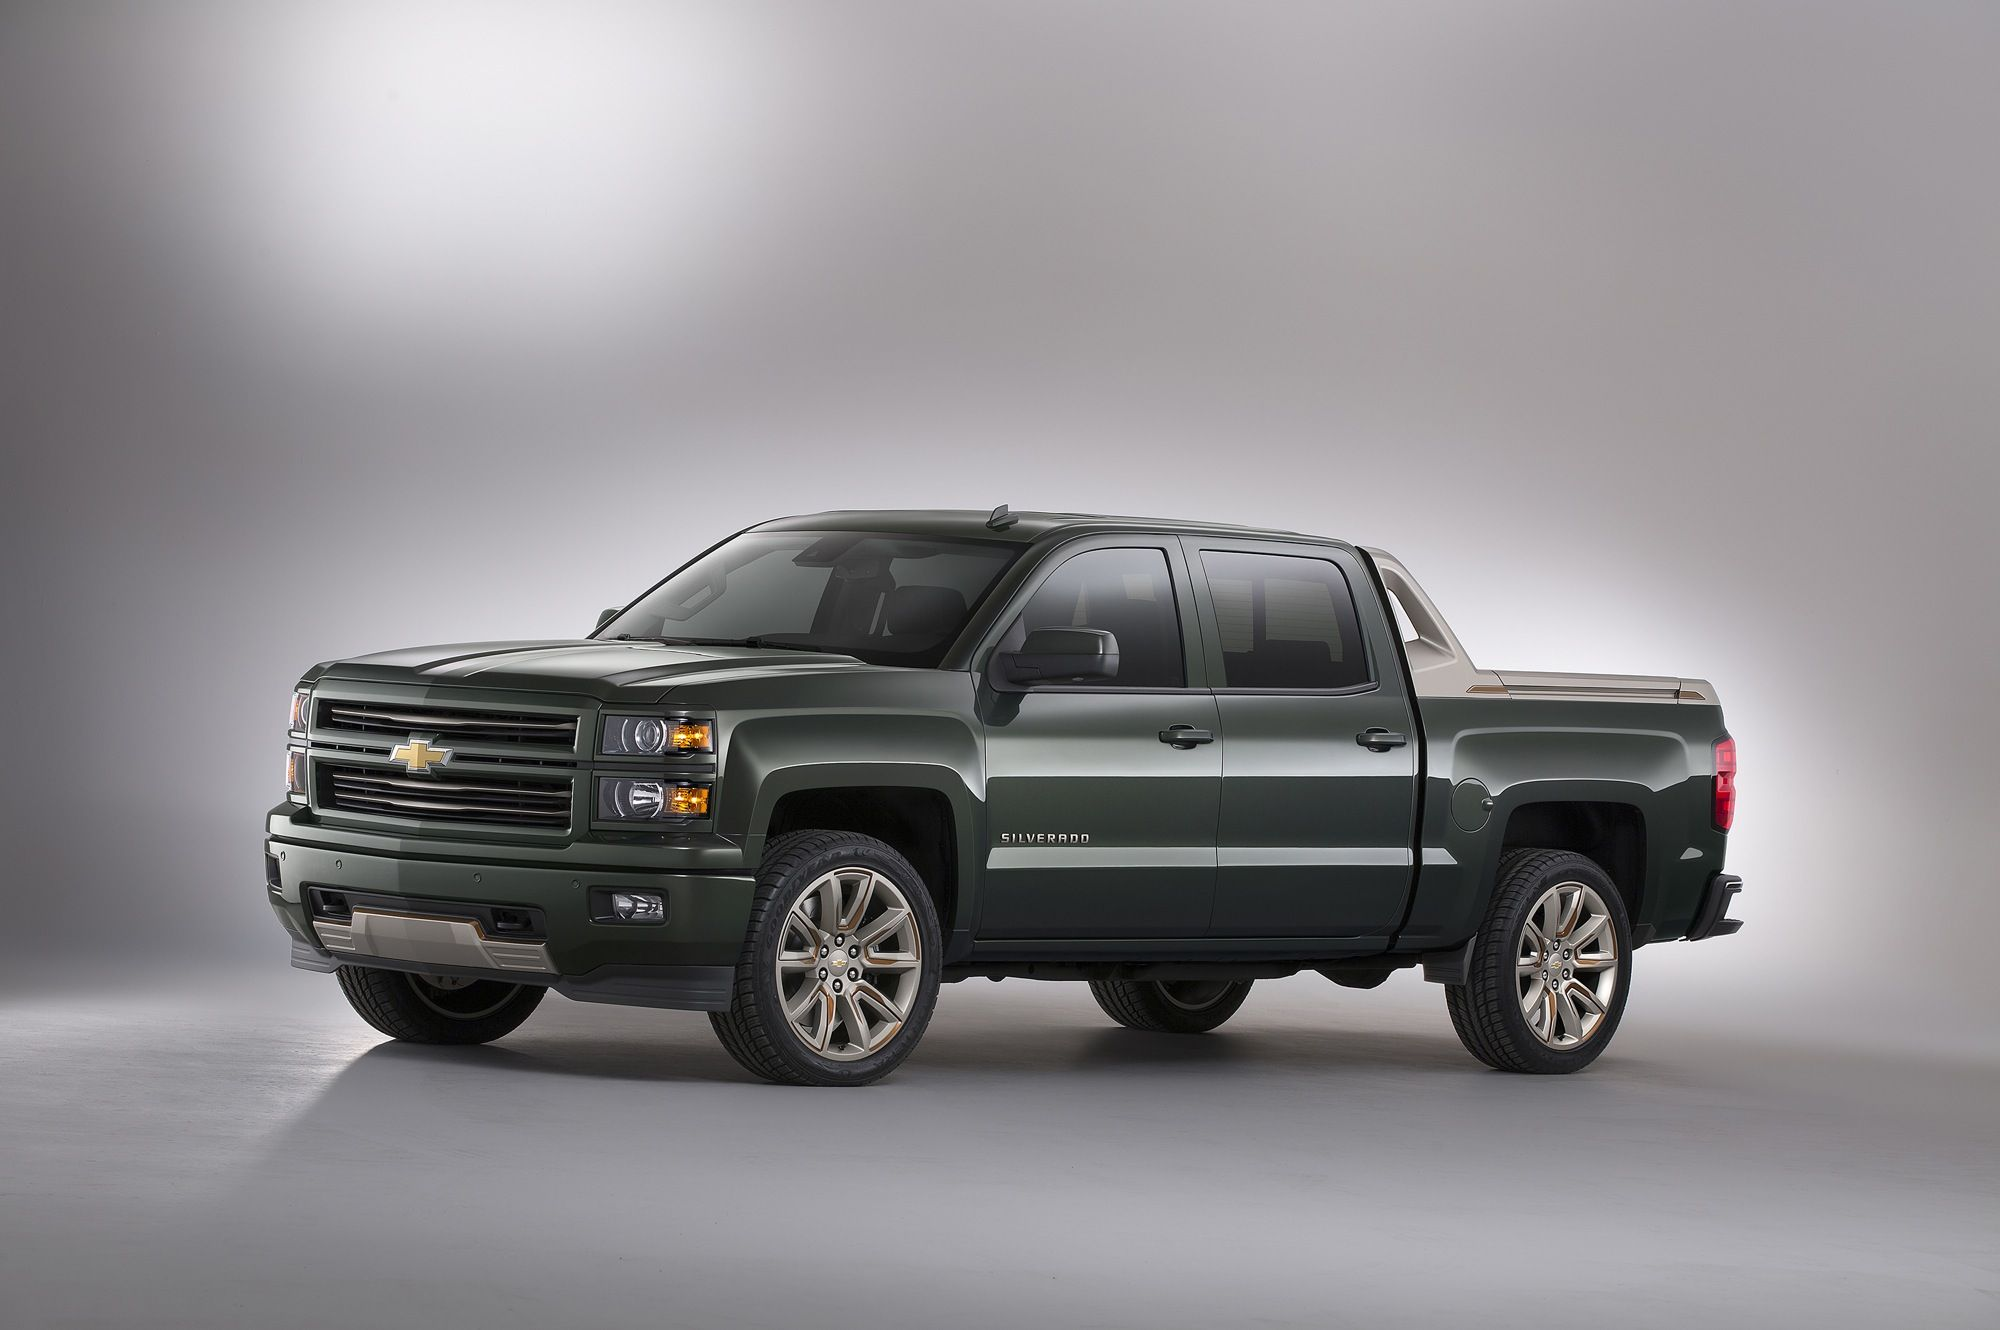 Chevy silverado high desert concept sema 2014 gm authority silverado high desert concept